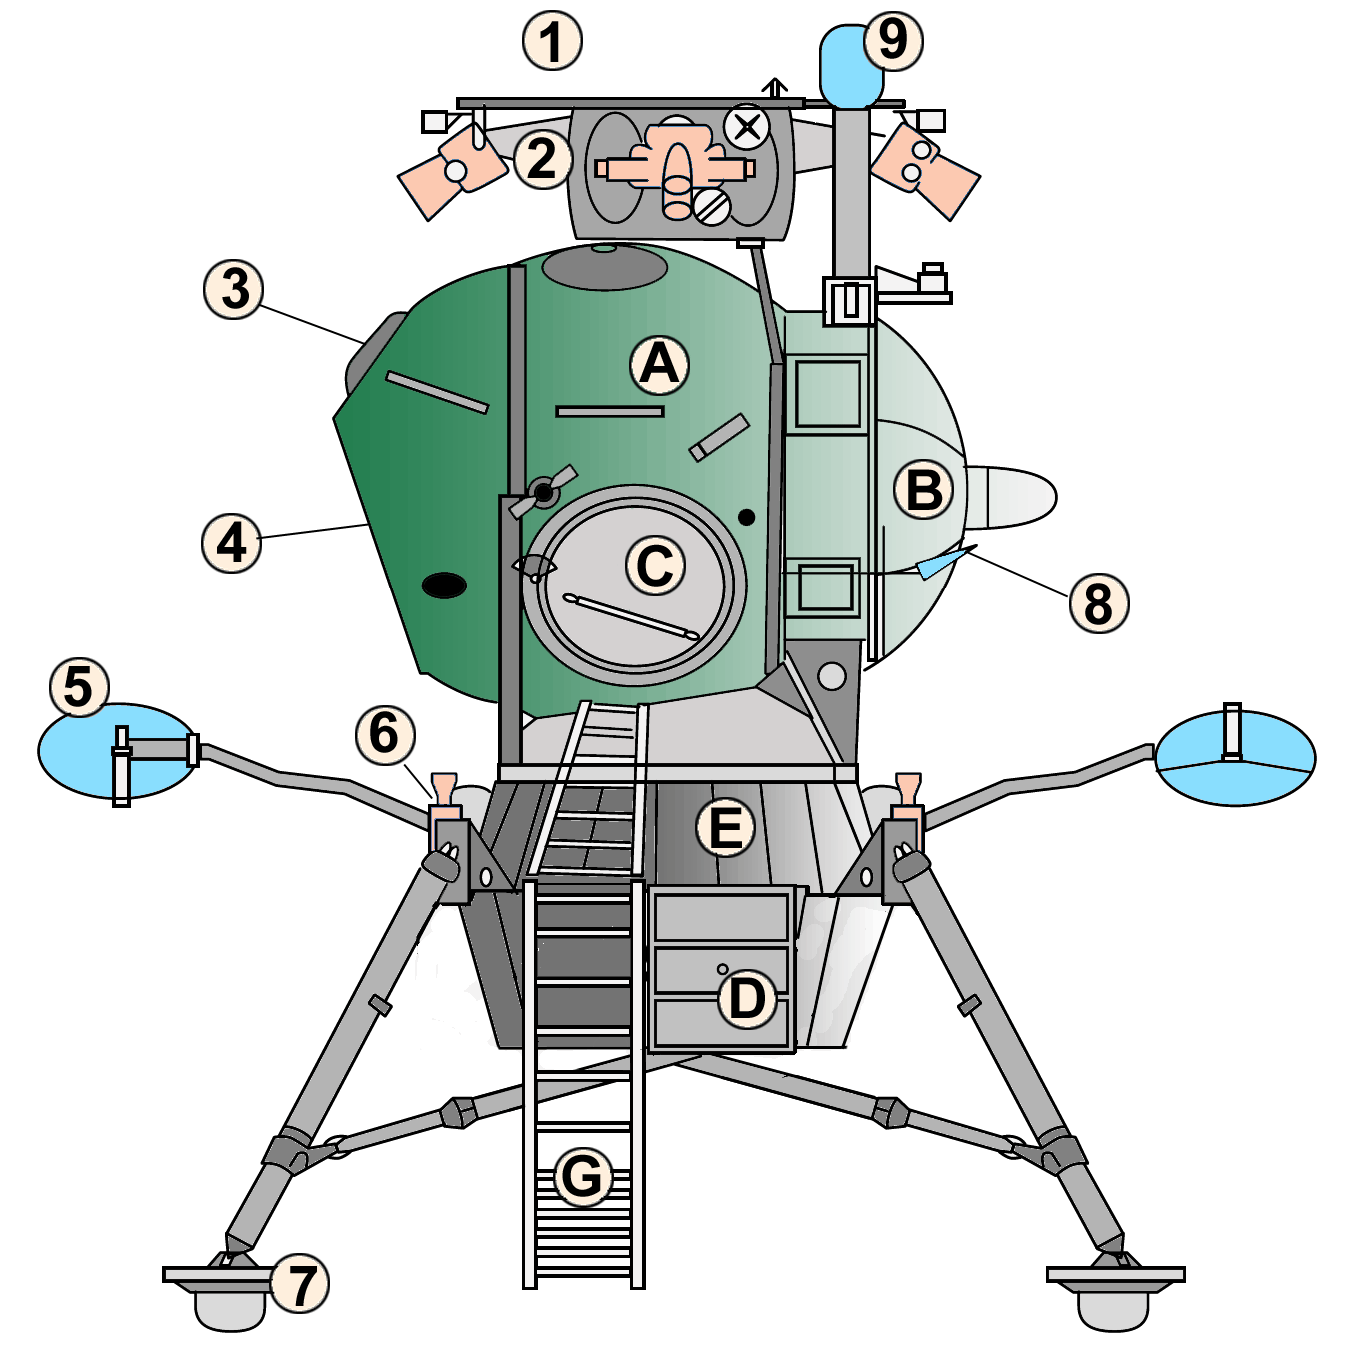 1347x1364 Filesoviet Lk Spacecraft Drawing With Labels And Some Colors.png